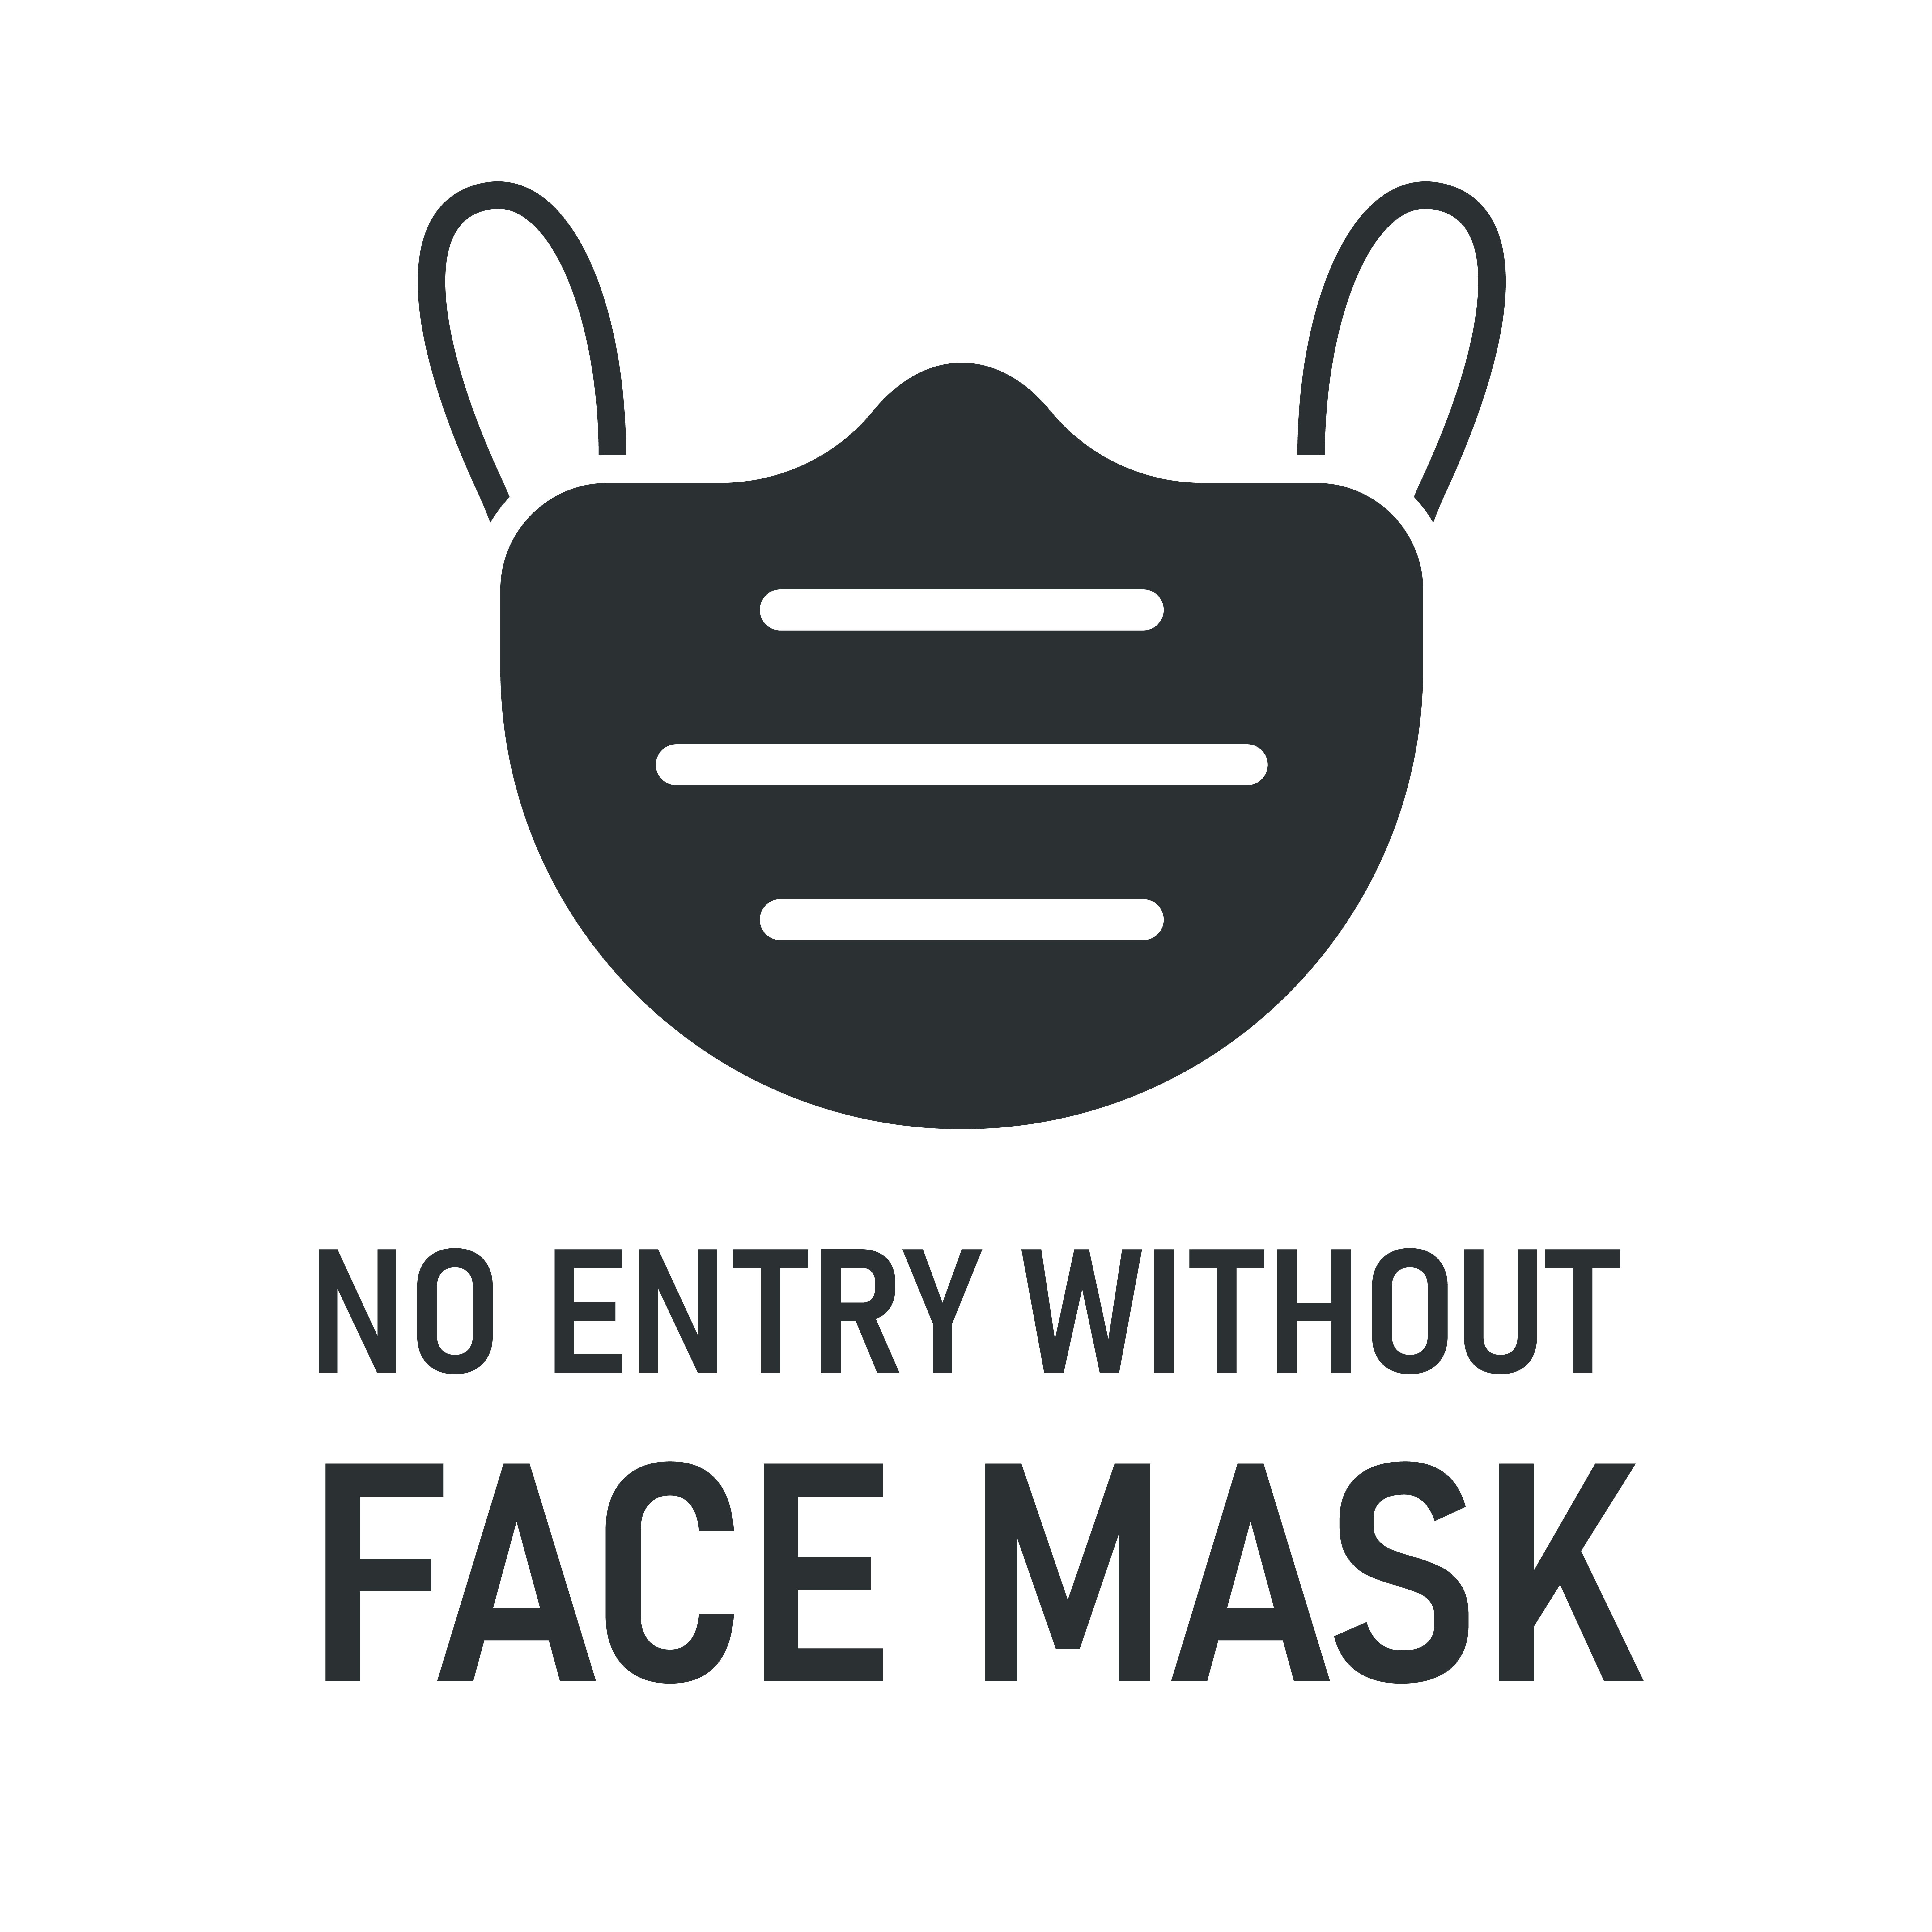 Download No Entry Without Face Mask With Mask Icon Vector Art Choose From Over A Million Free Vectors Clipart Graphics Vector Art Images In 2021 Mask Icon Face Mask